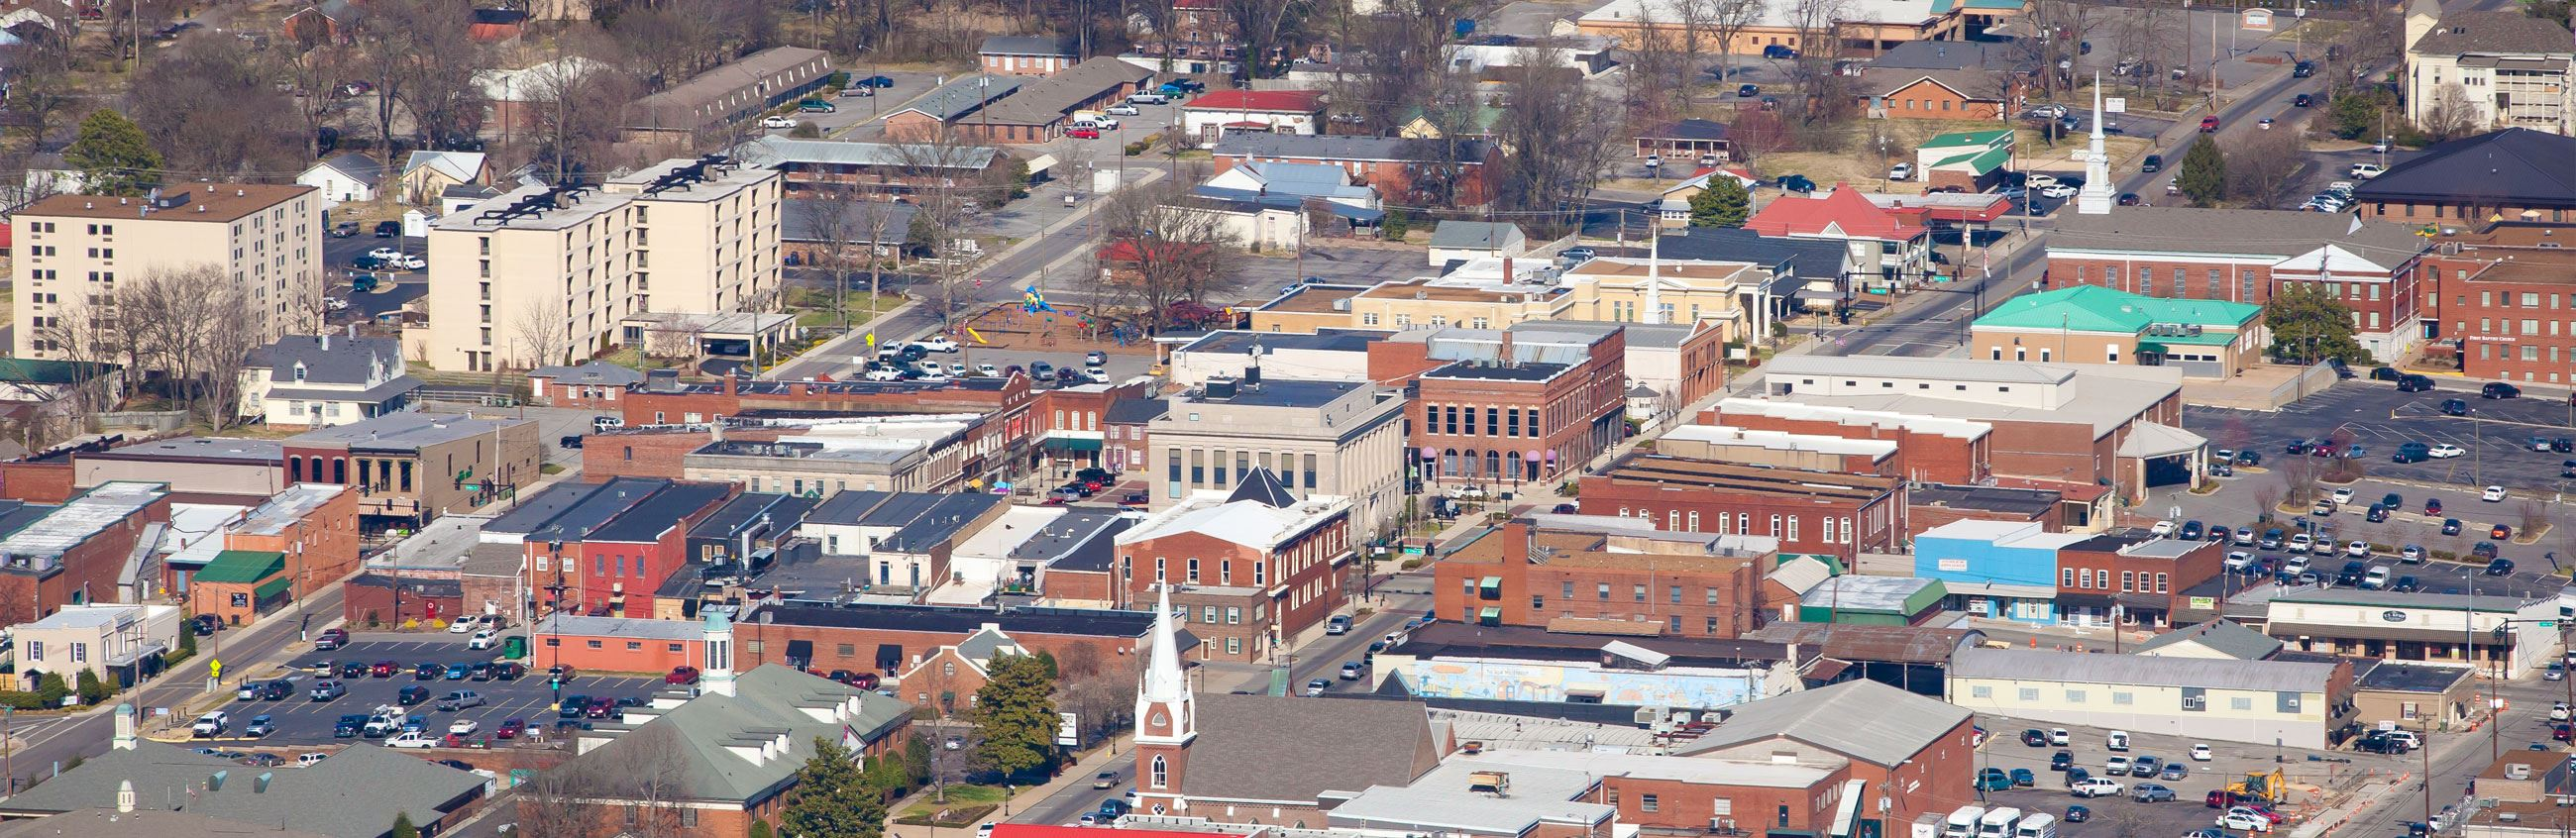 Arial View of Downtown Gallatin